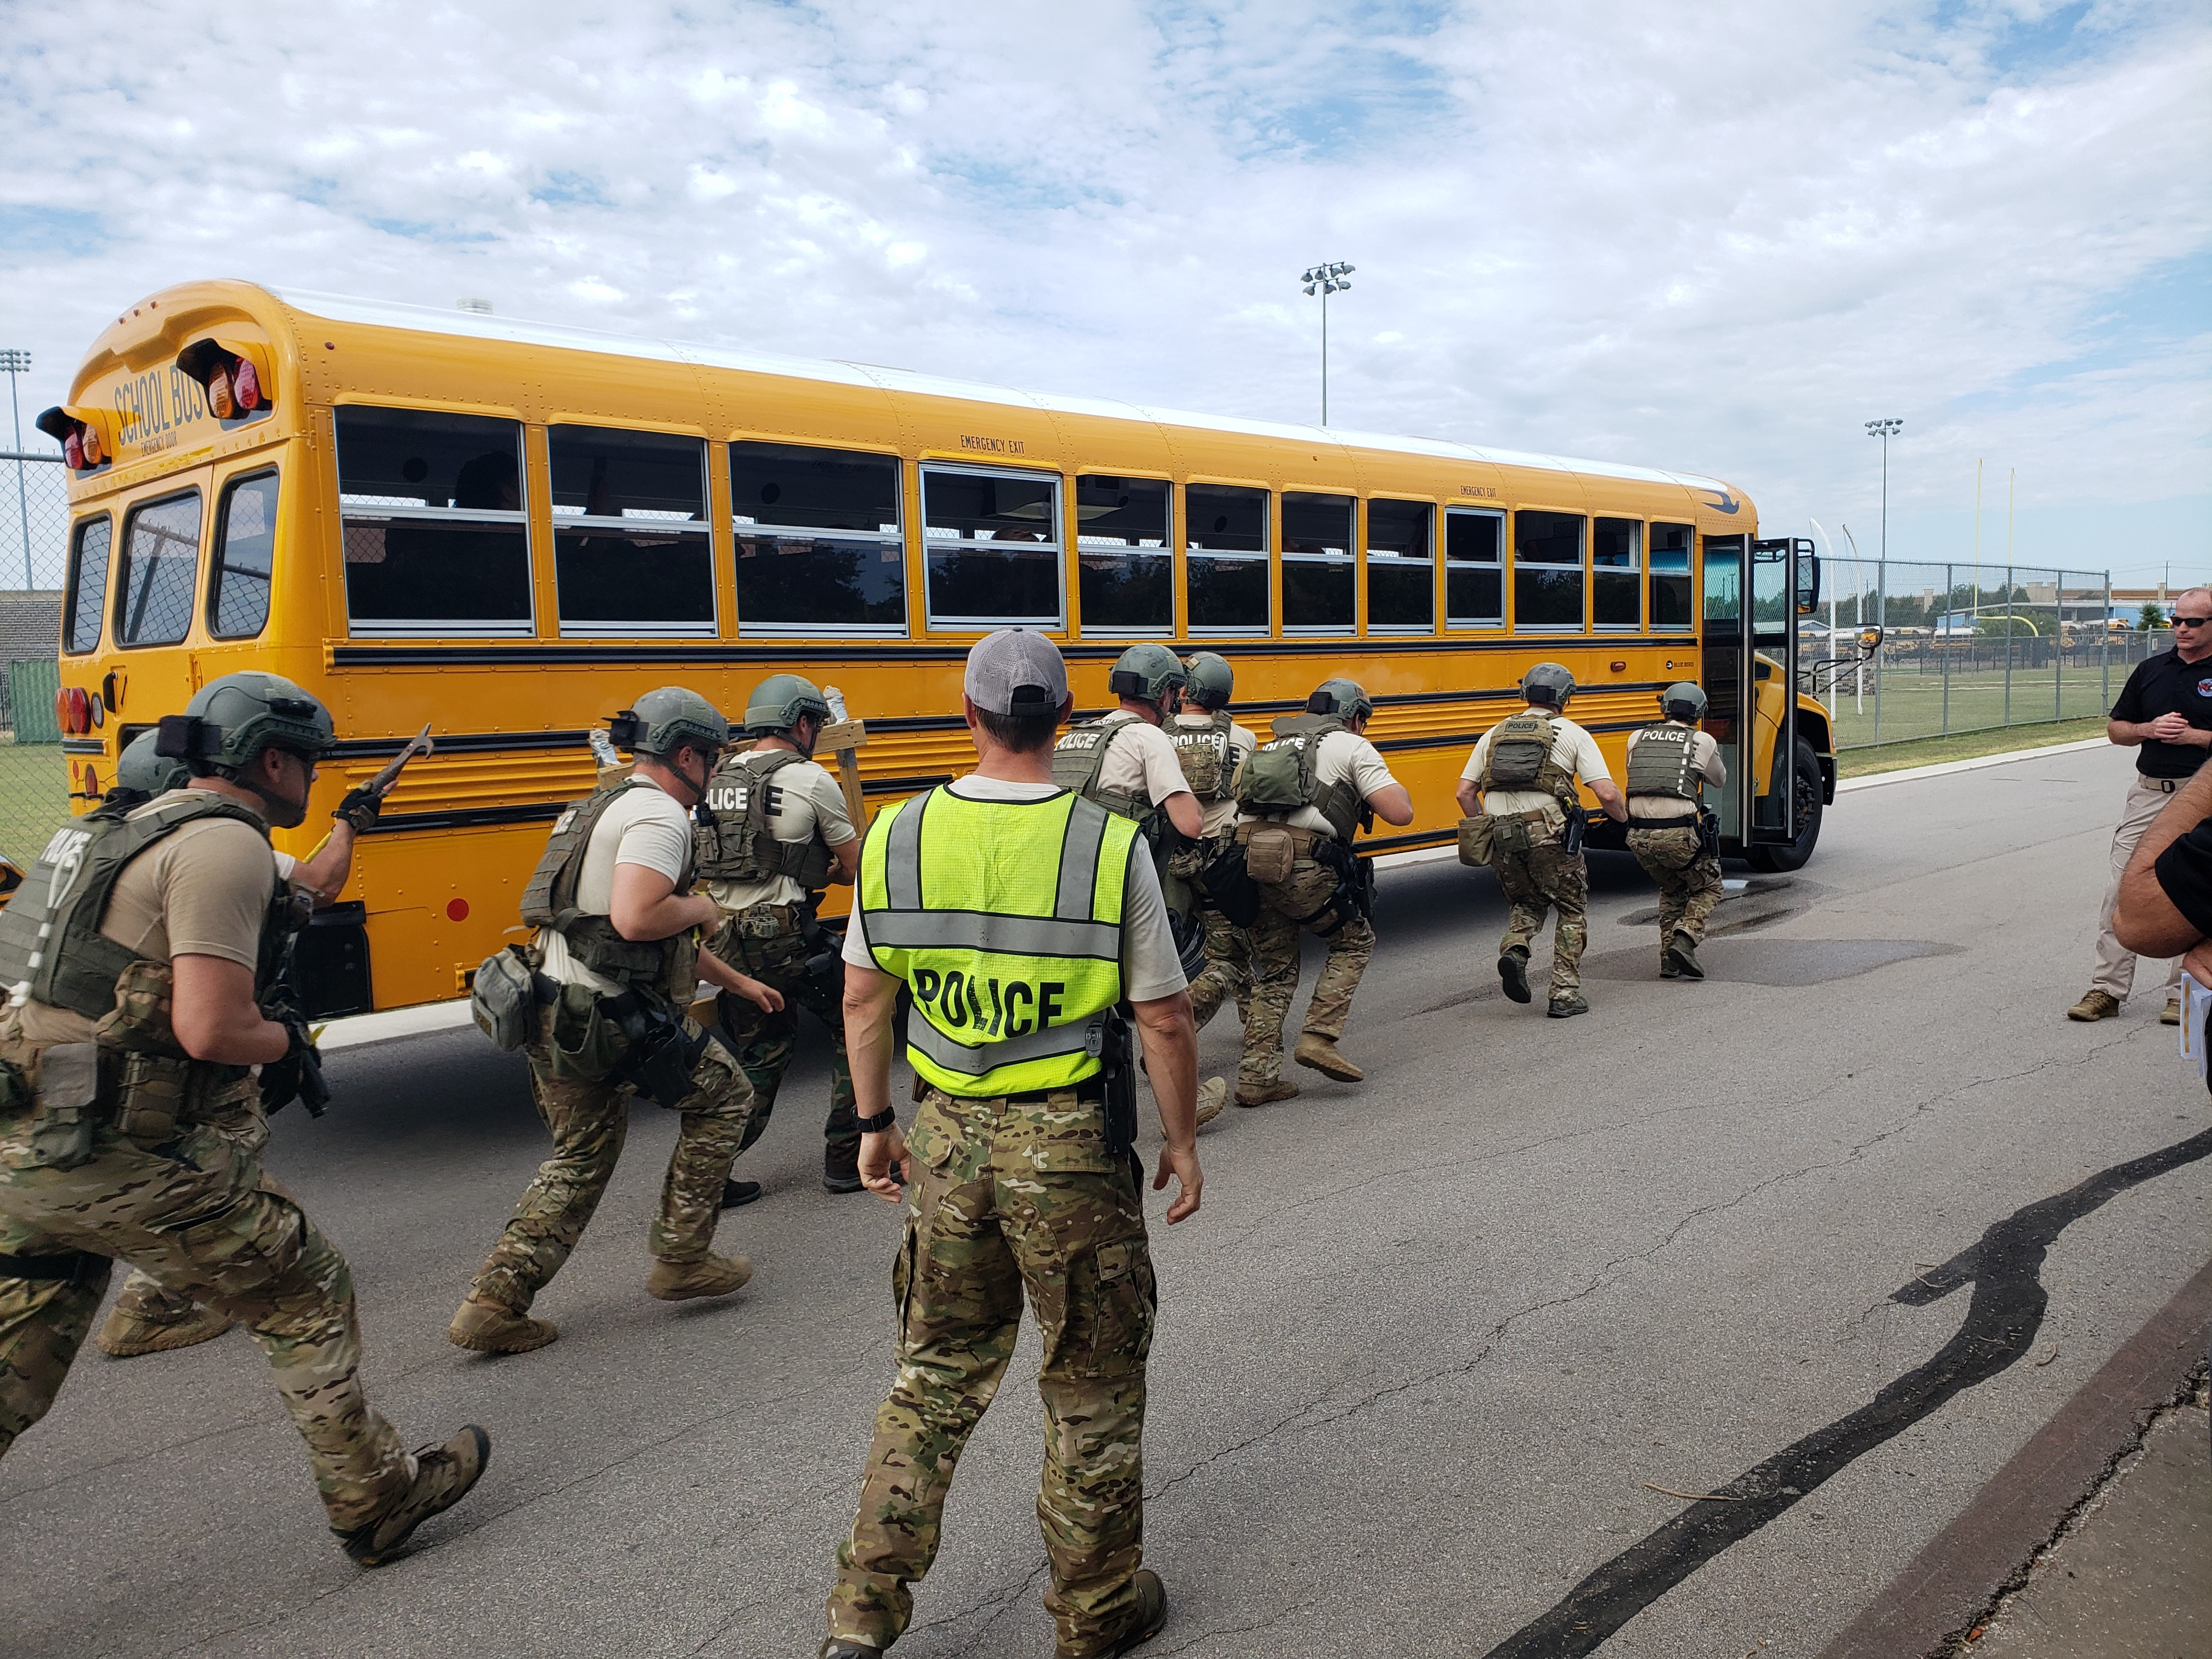 TSA participates in school bus hijacking drill in Texas